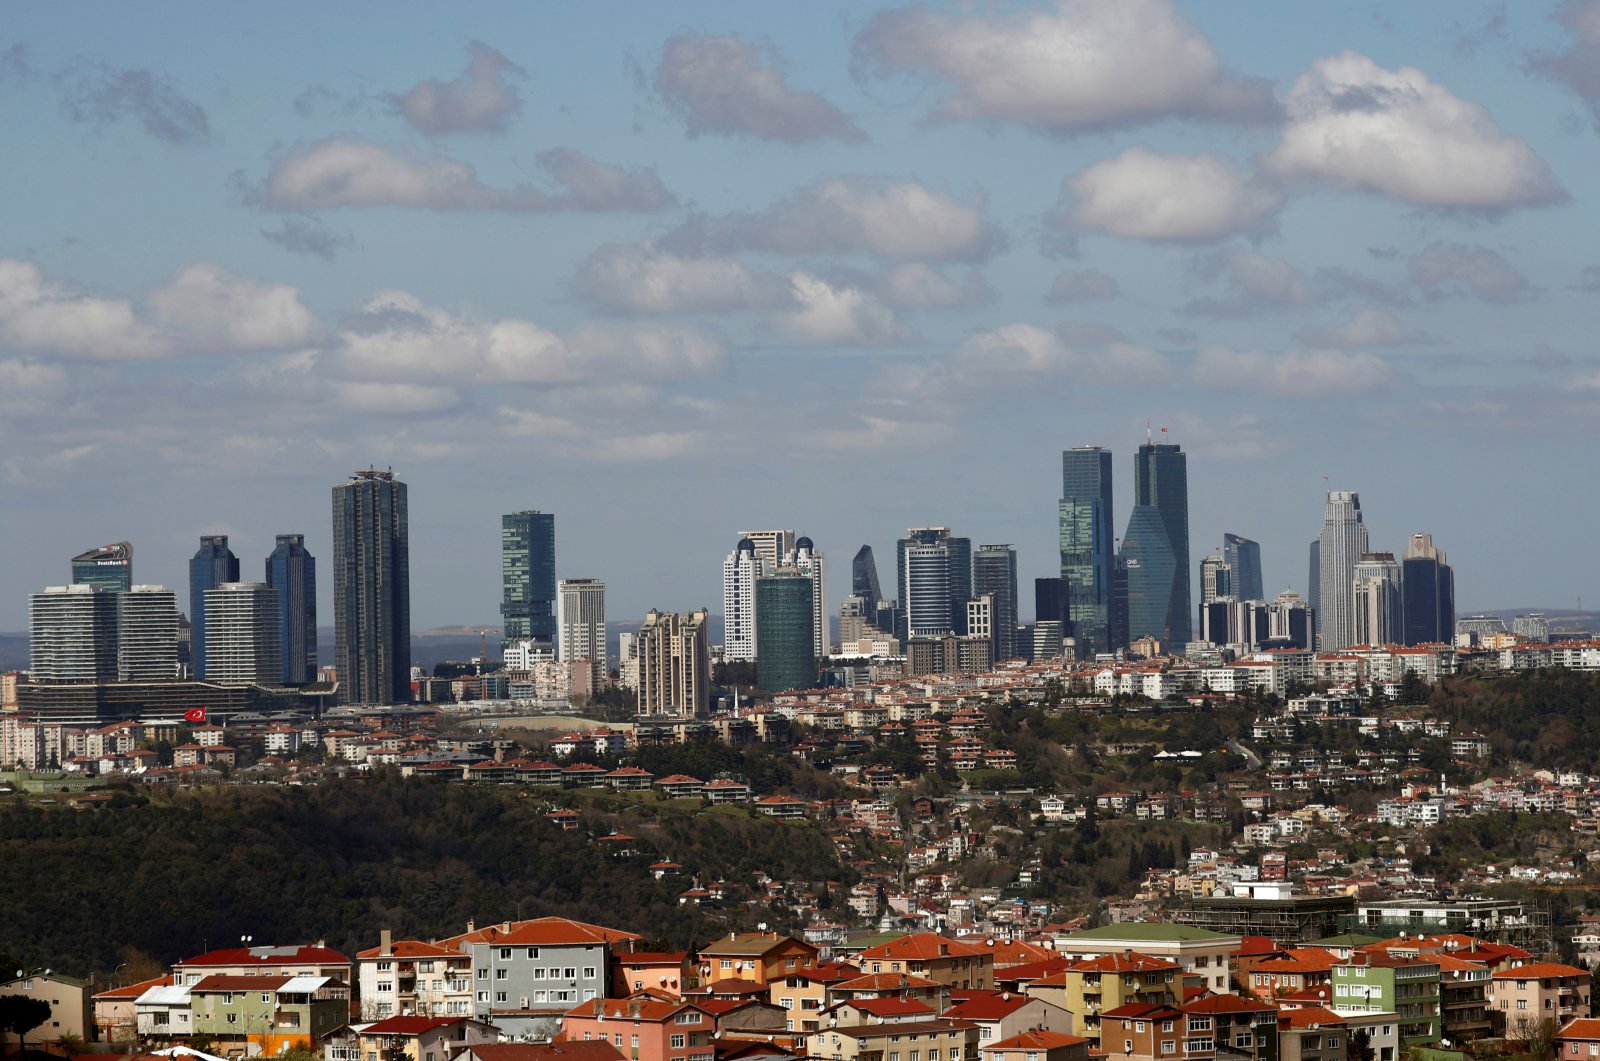 Skyscrapers are seen in the business and financial district of Levent in Istanbul, Turkey, March 29, 2019. (Reuters Photo)